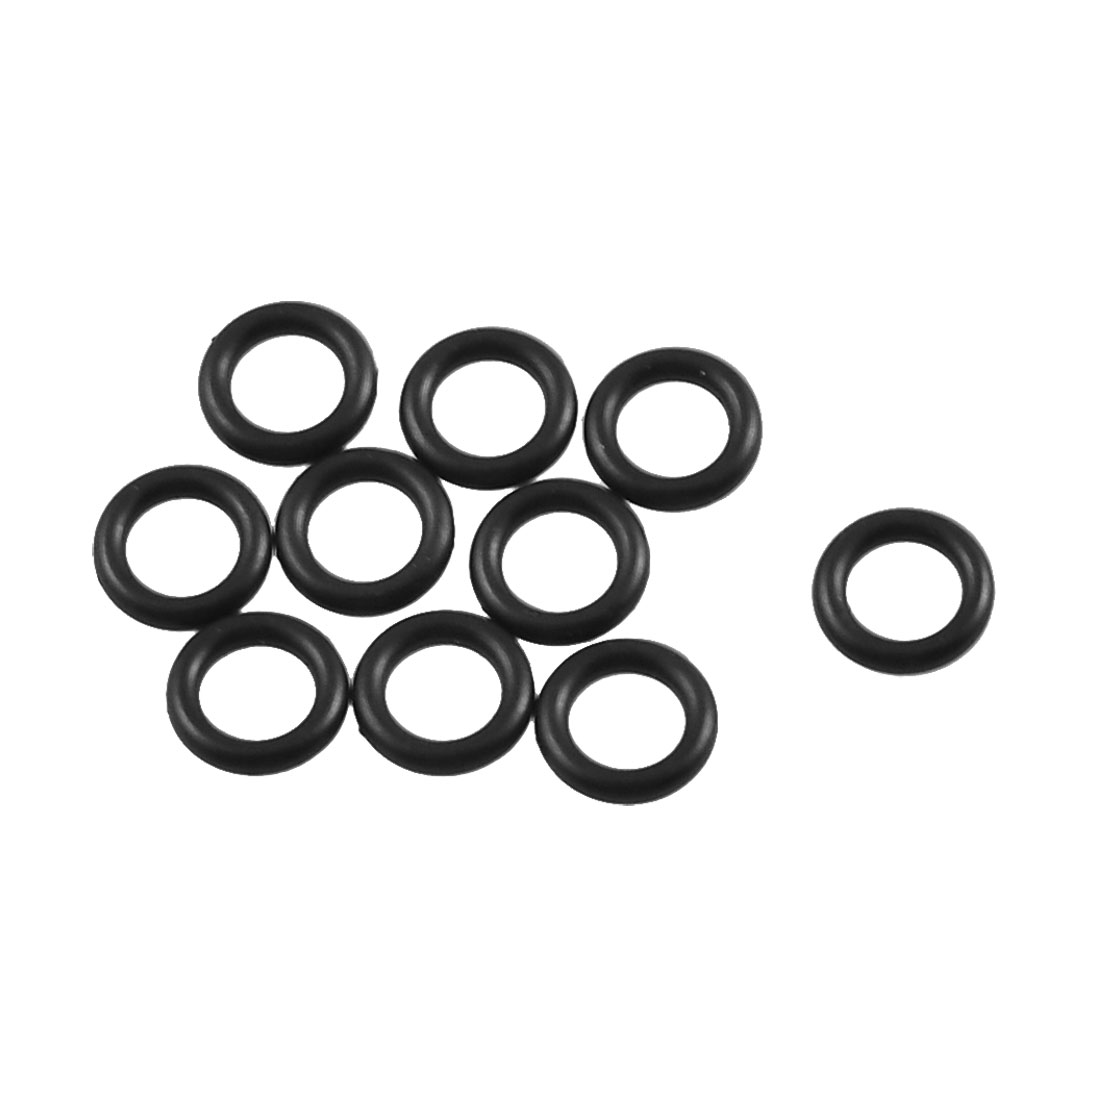 10 Pcs Black Rubber Oil Filter O Ring Sealing Gaskets 6mm x 1.8mm